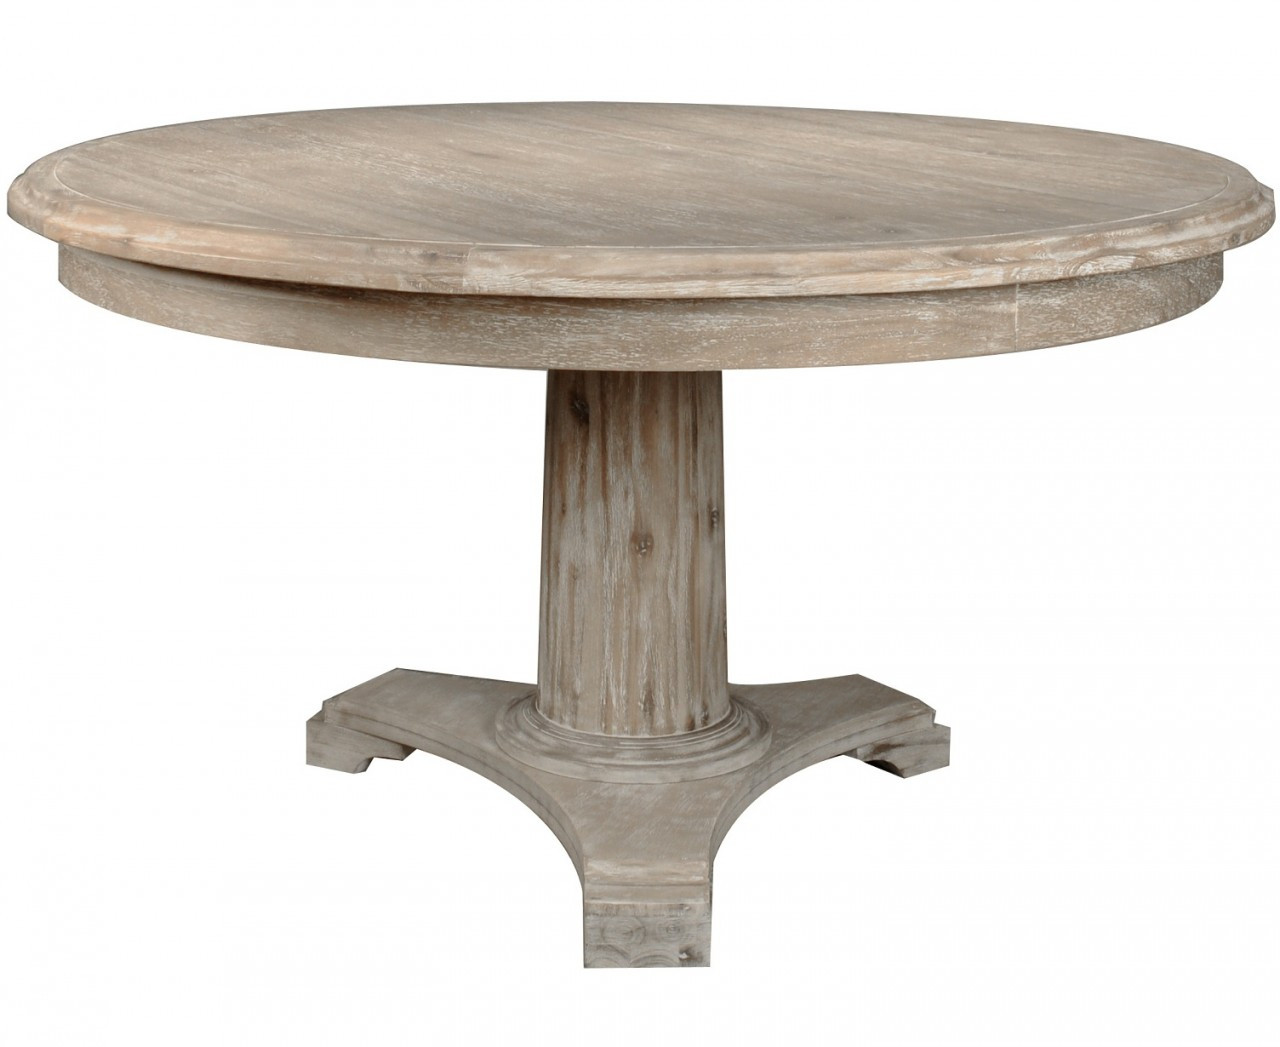 Belmont round dining table 54 round column pedestal for Table circle